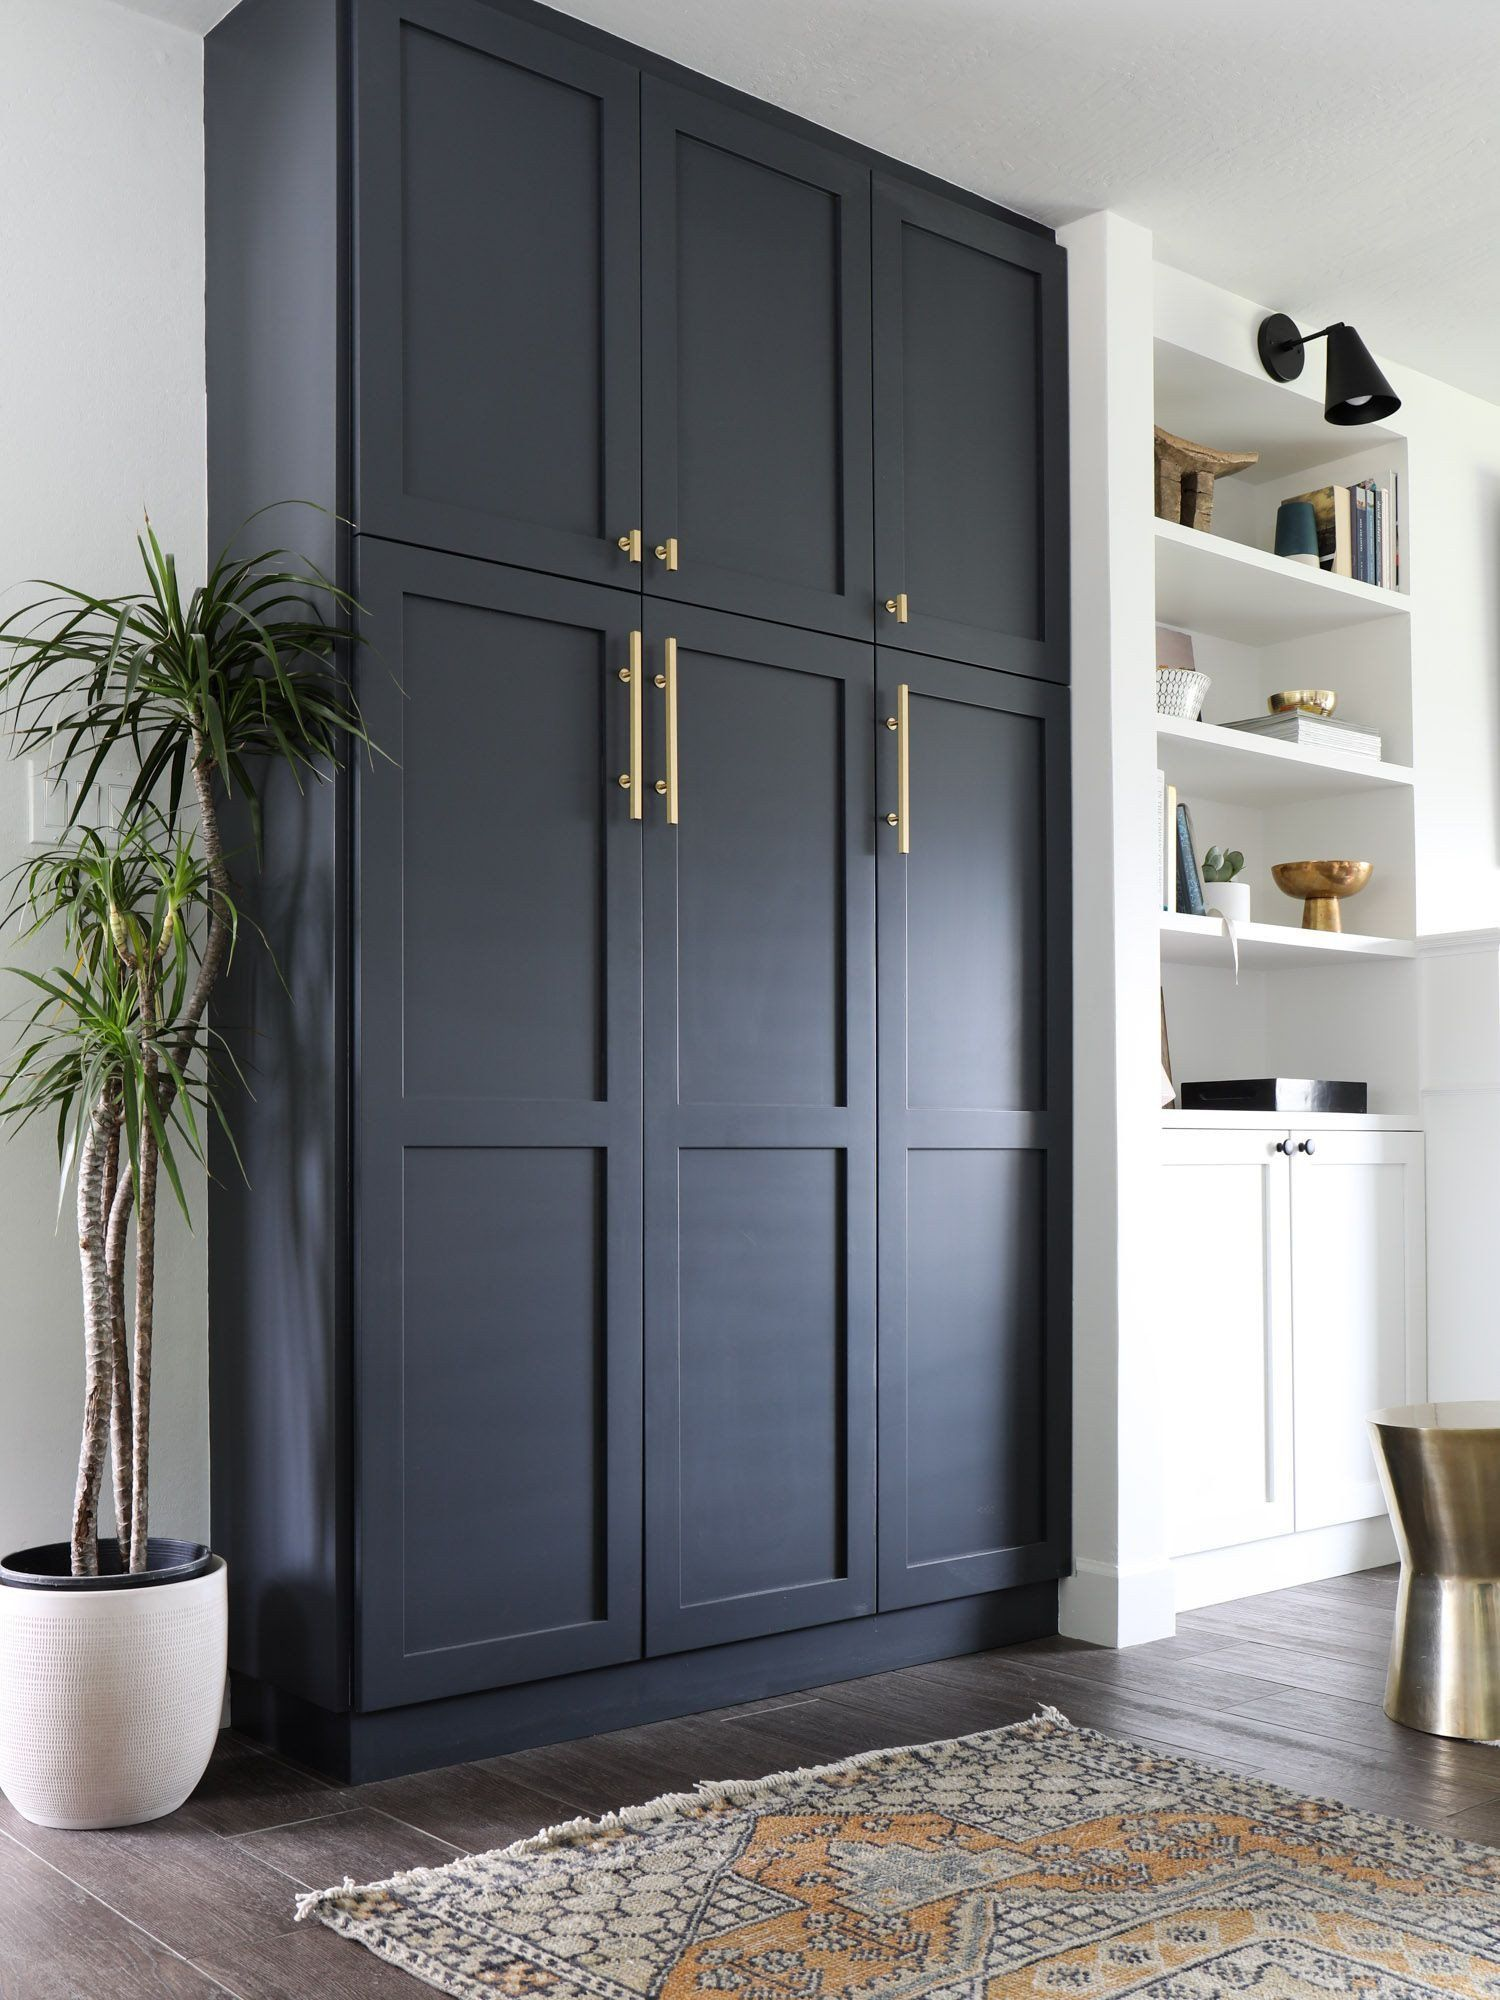 Small Living Room Storage Cabinet Ikea Brimnes Cabinets With Gold Pulls Zara Brookes In 2020 Built In Cupboards Living Room Storage Cabinet Built In Pantry